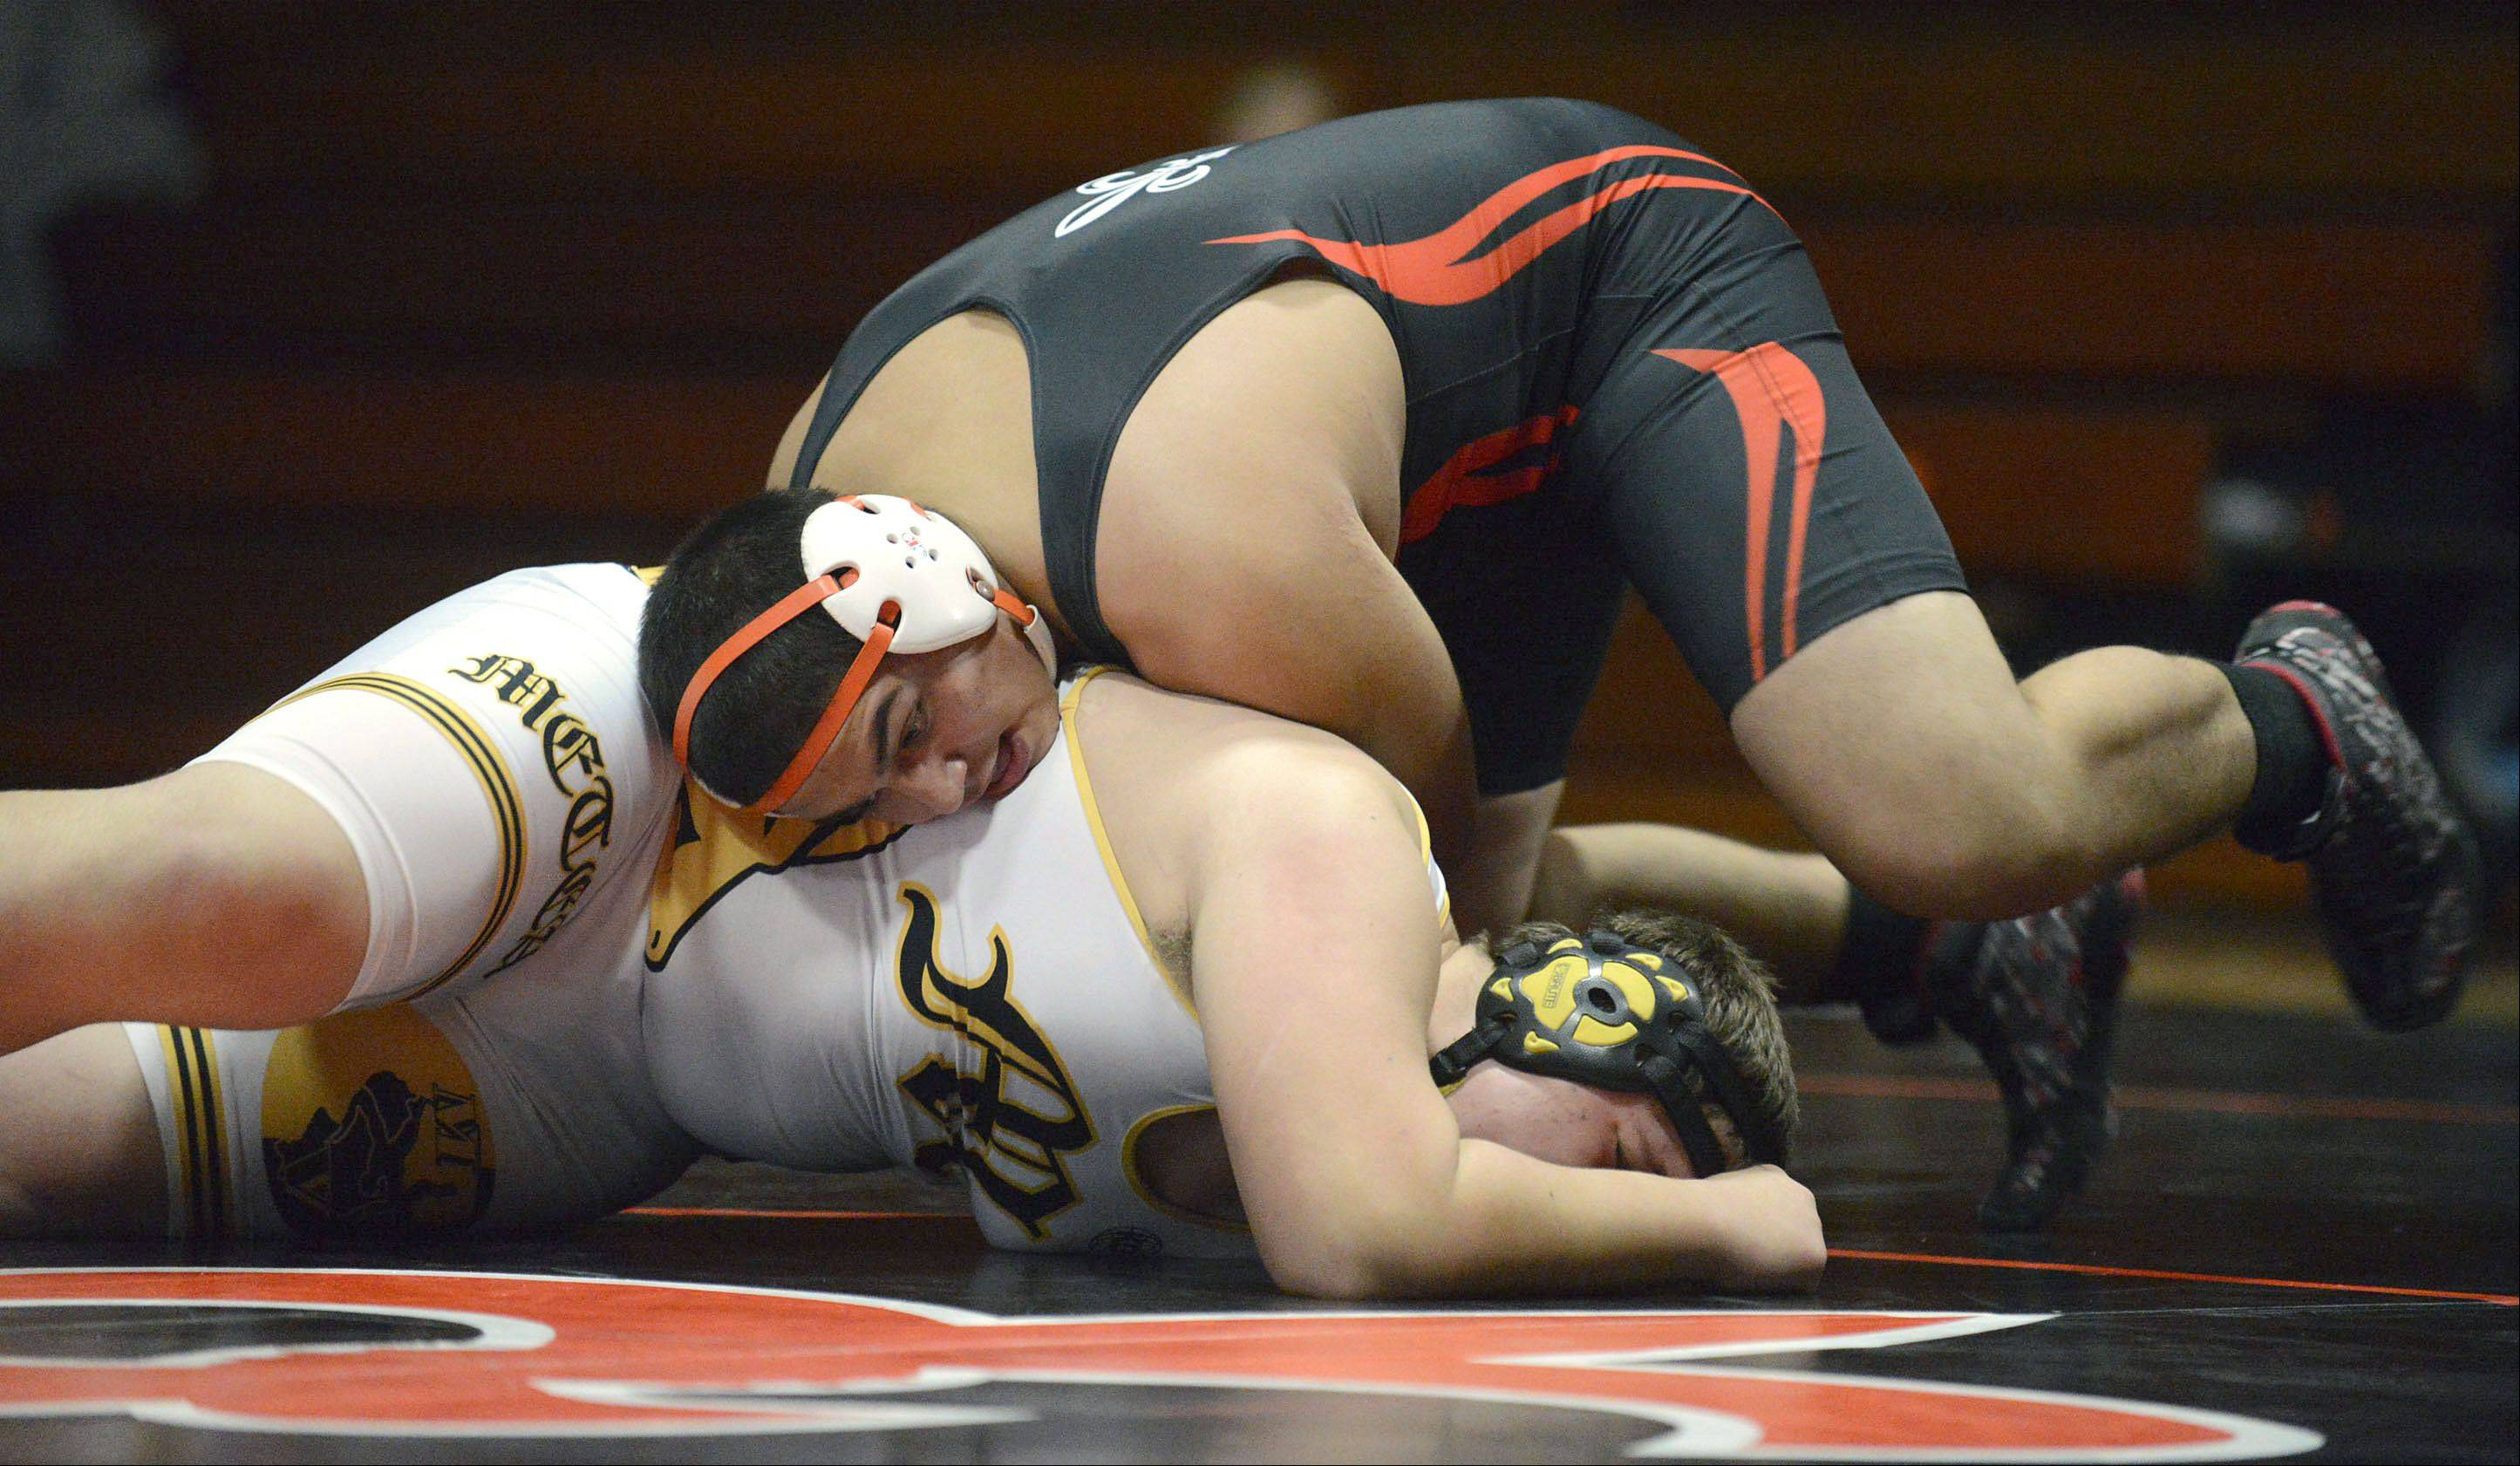 St. Charles East's Will Leite takes the win in the 285 pound match vs. Metea Valley's Bobby Papiernak on Thursday, December 19.